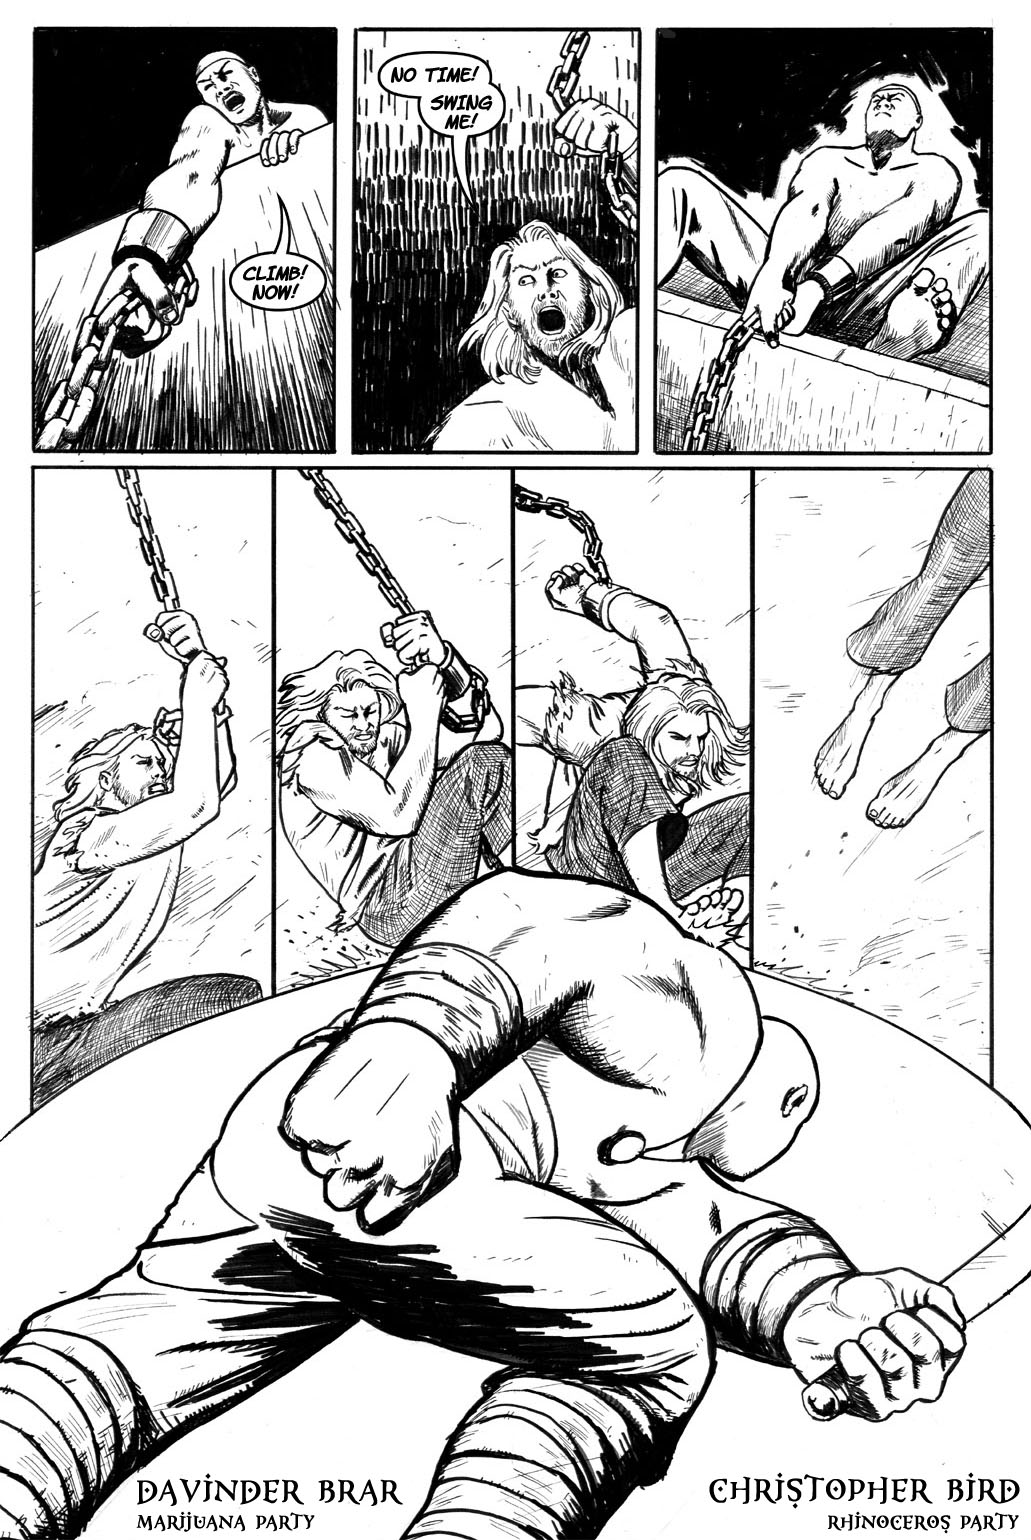 Book 2, page 22